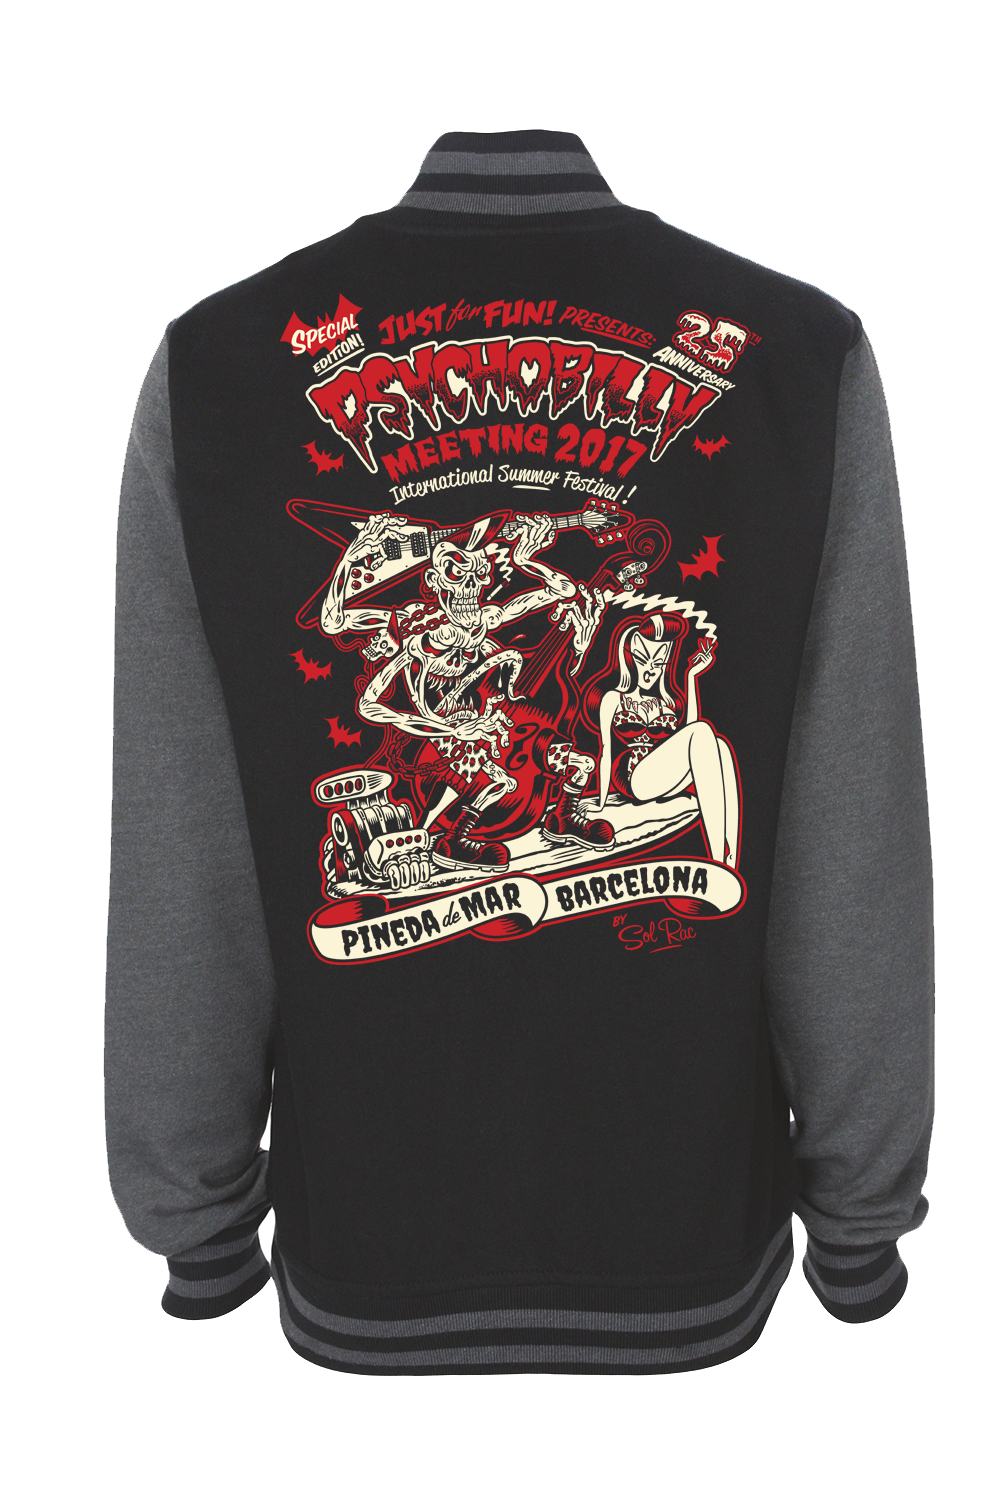 VARSITY PSYCHOBILLY MEETING 2017 UNISEX BY SOLRAC